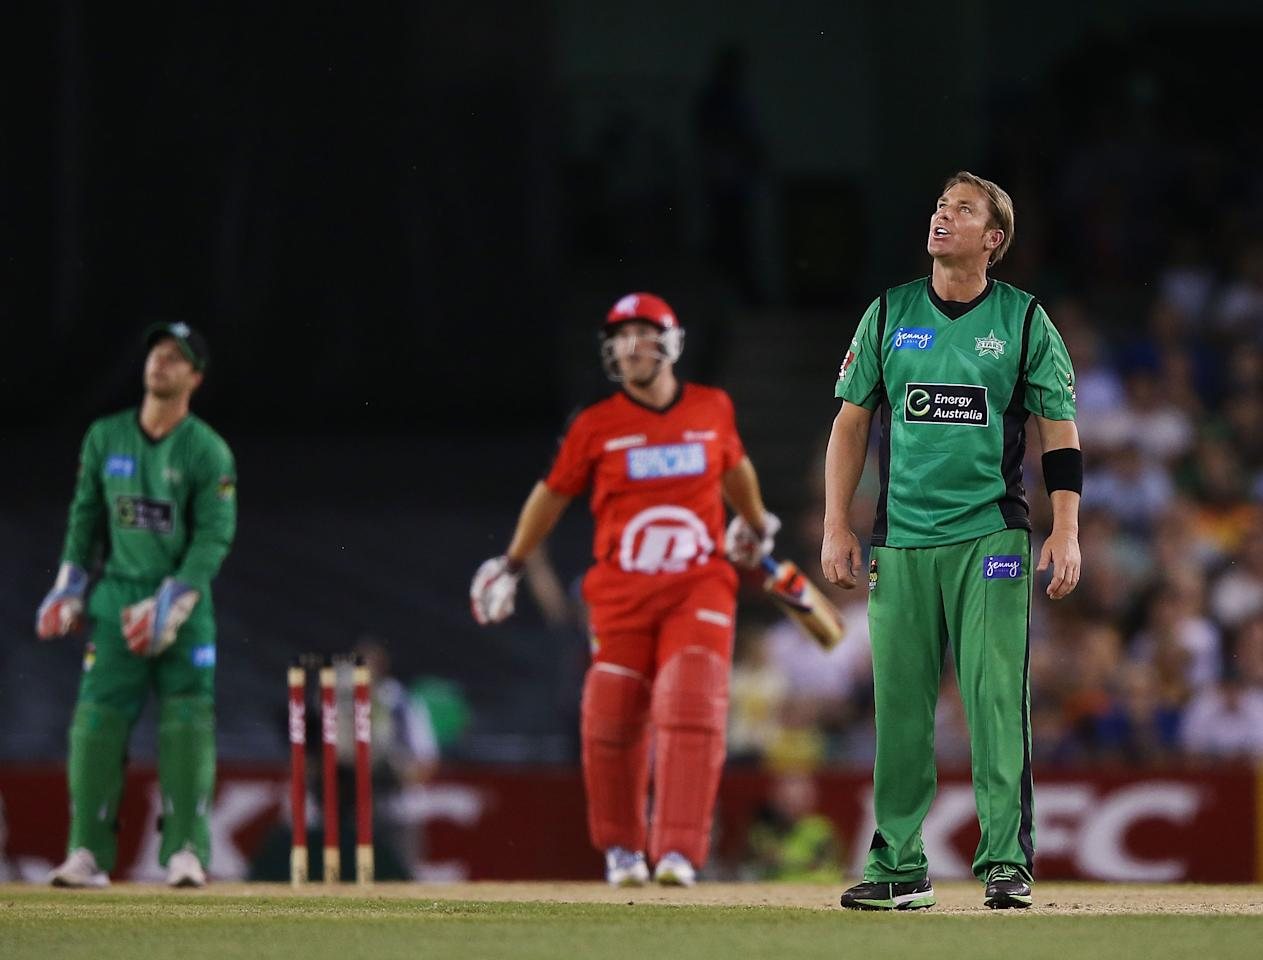 MELBOURNE, AUSTRALIA - DECEMBER 07:  Shane Warne of The Stars is hit for six by Aaron Finch of The Renegades during the Big Bash League match between the Melbourne Renegades and the Melbourne Stars at Etihad Stadium on December 7, 2012 in Melbourne, Australia.  (Photo by Michael Dodge/Getty Images)